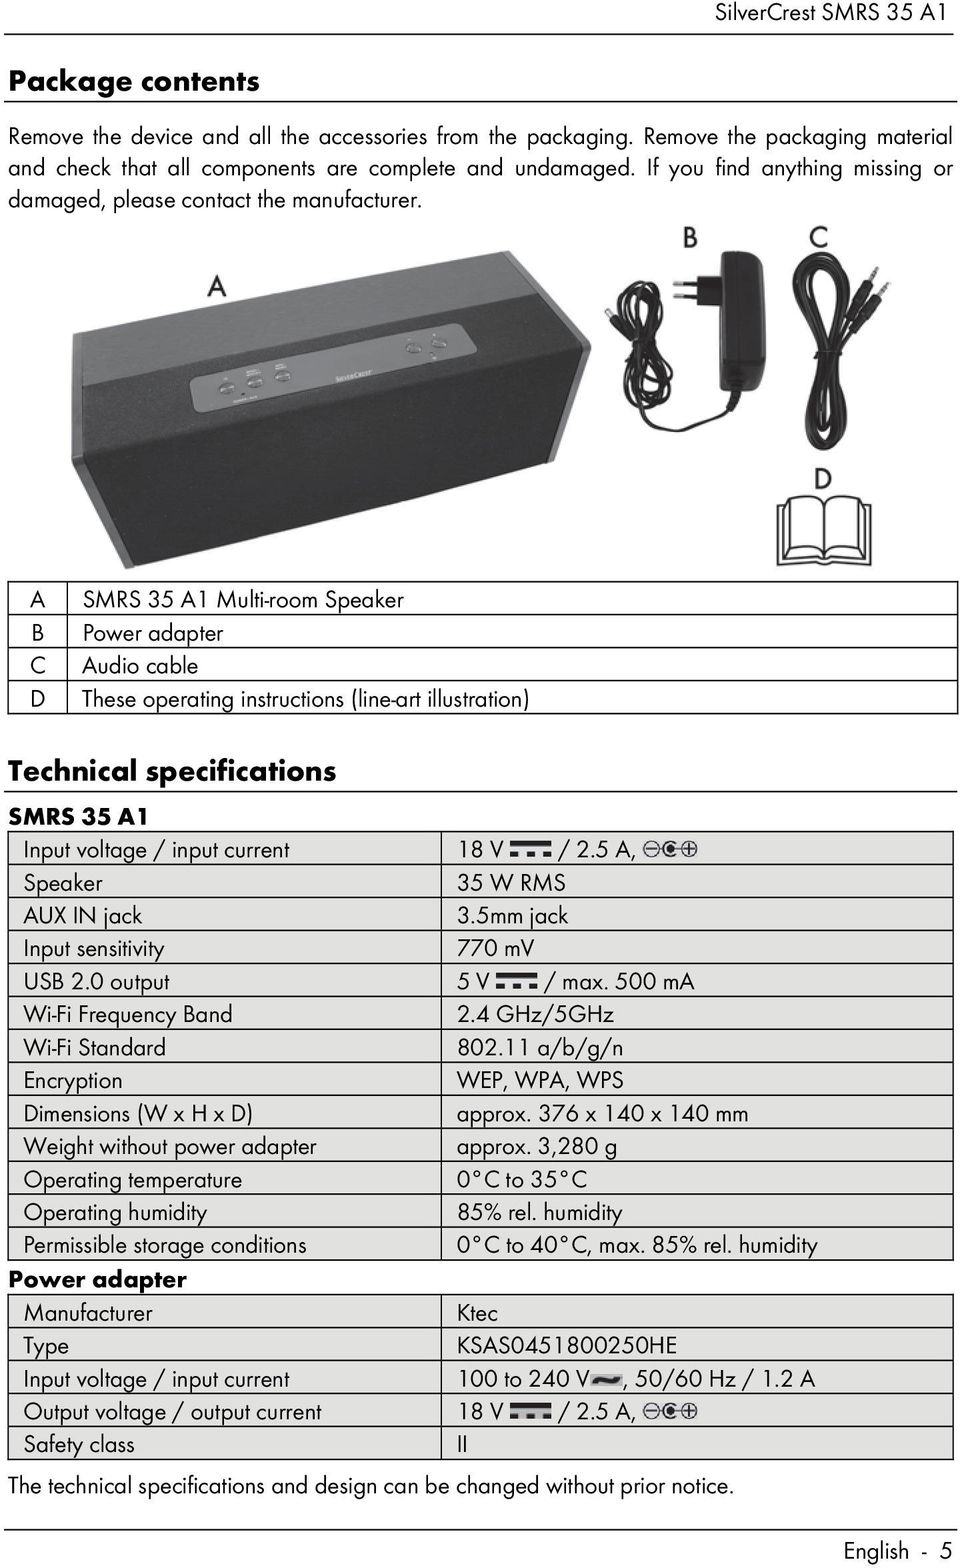 A B C D SMRS 35 A1 Multi-room Speaker Power adapter Audio cable These operating instructions (line-art illustration) Technical specifications SMRS 35 A1 Input voltage / input current 18 V / 2.